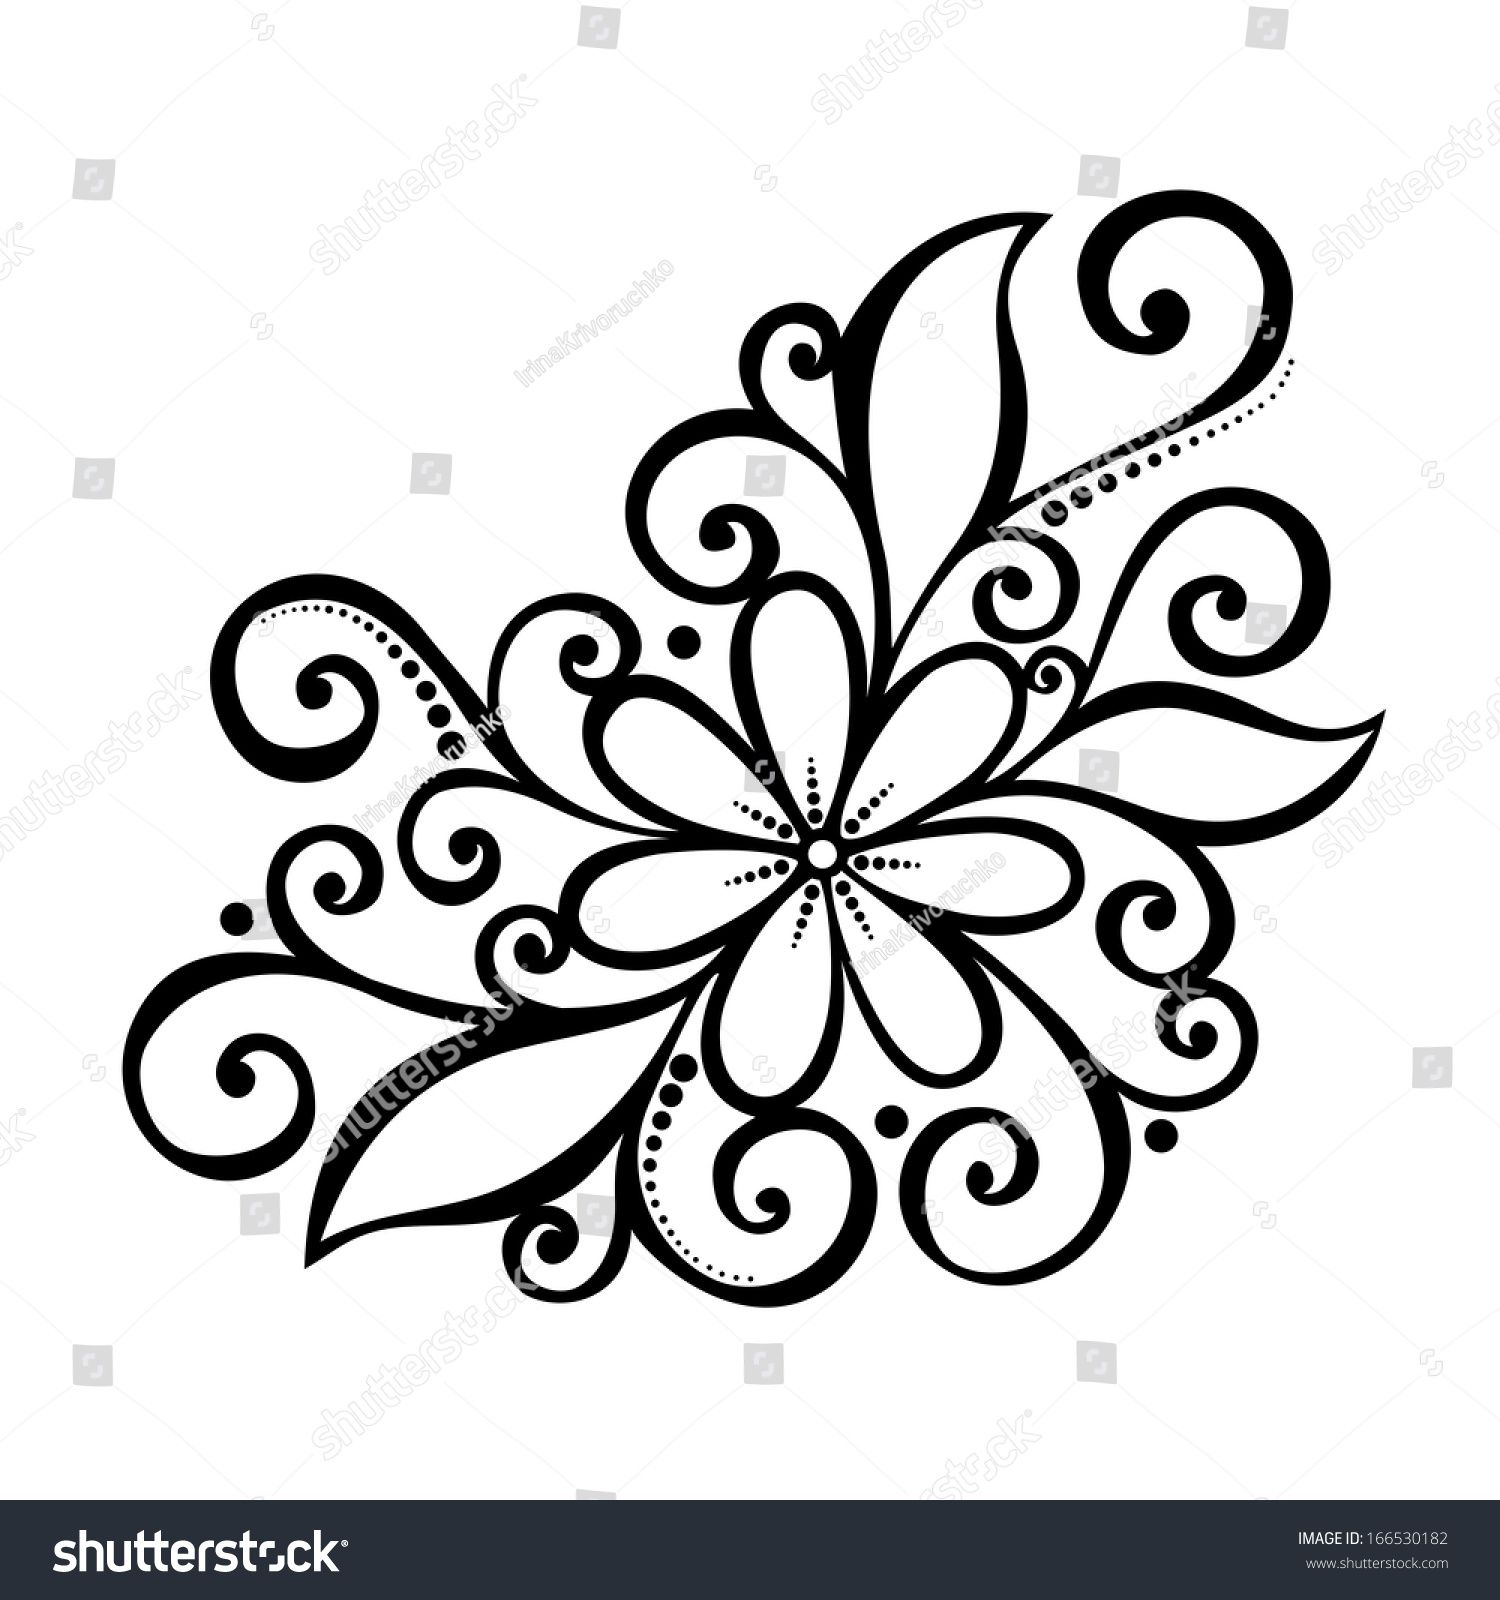 Beautiful Decorative Flower With Leaves Patterned Design Flower